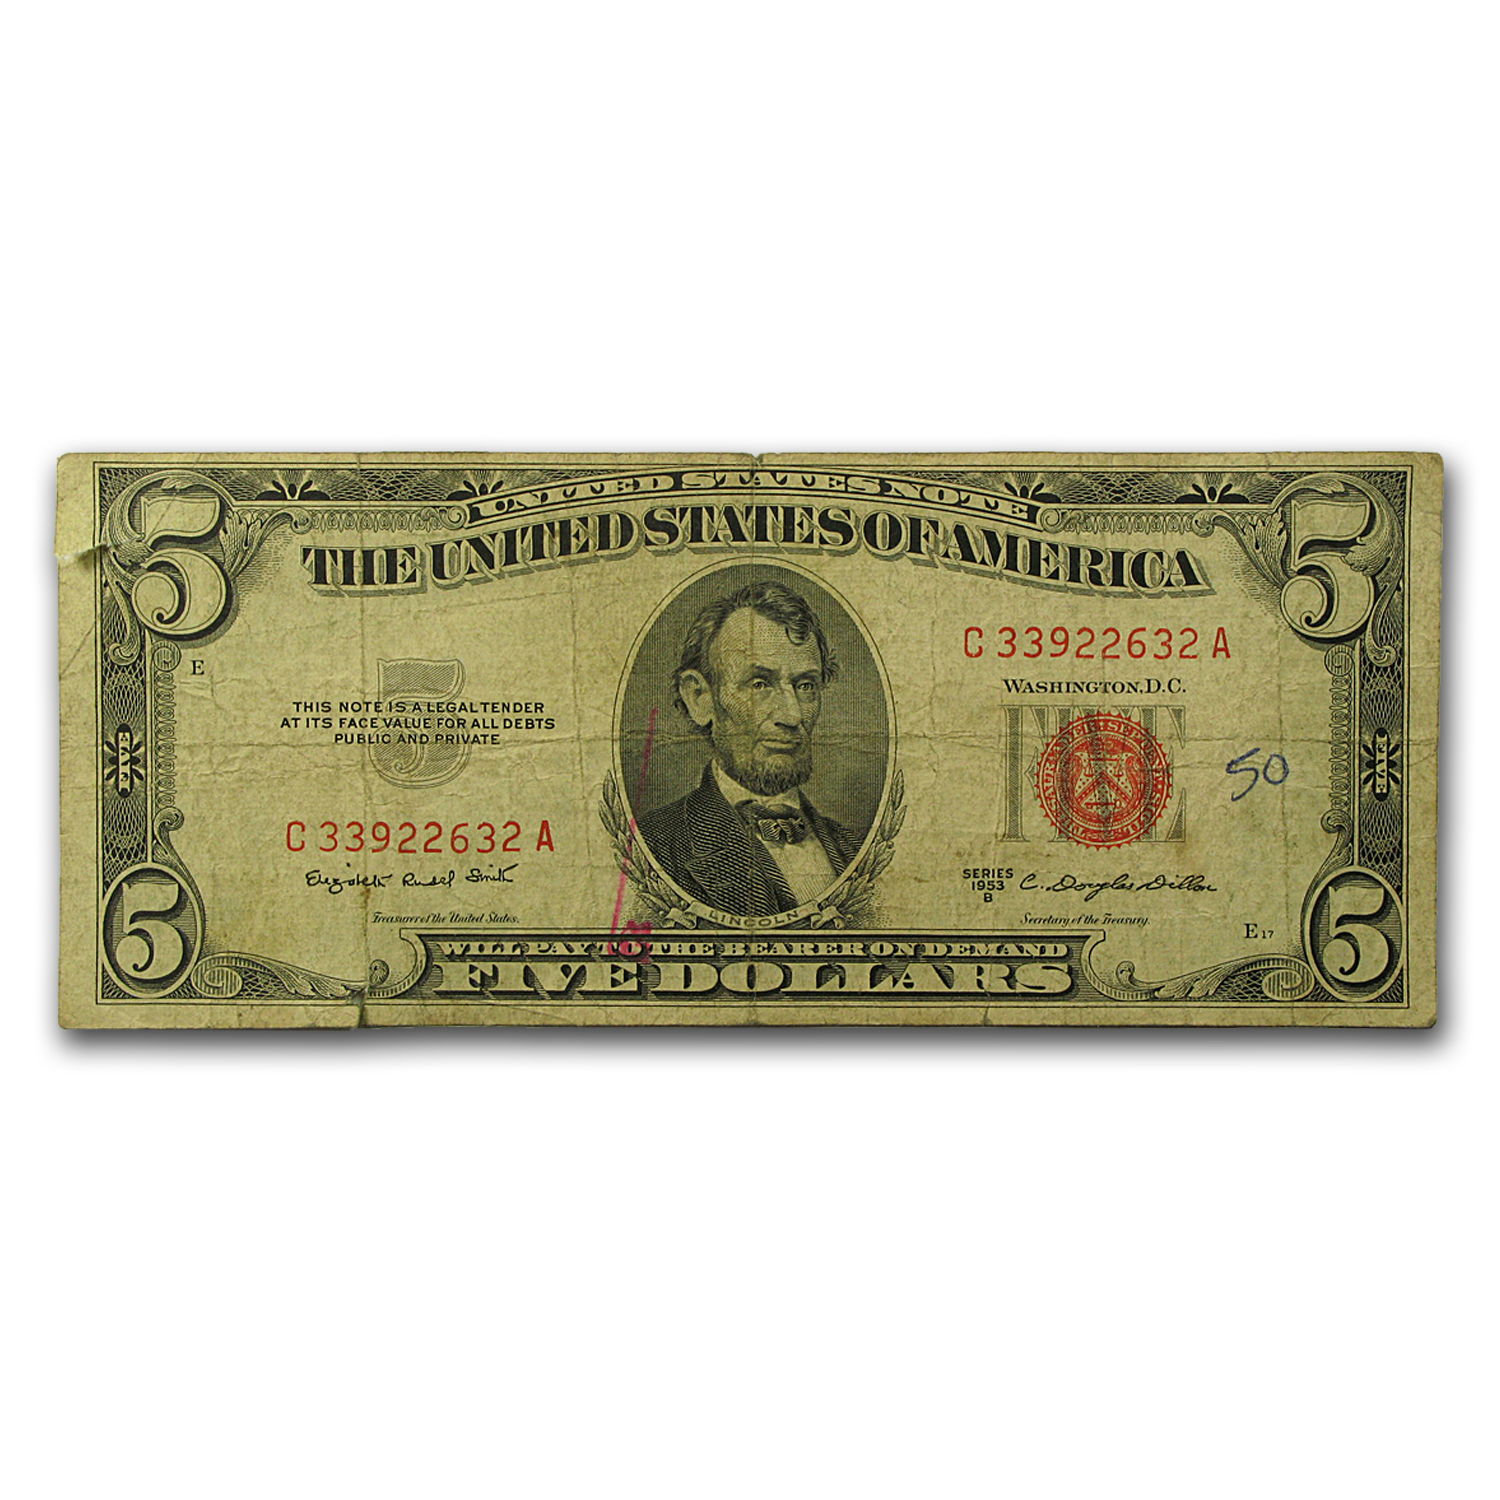 1953 $5.00 U.S. Note Red Seal Cull/Good